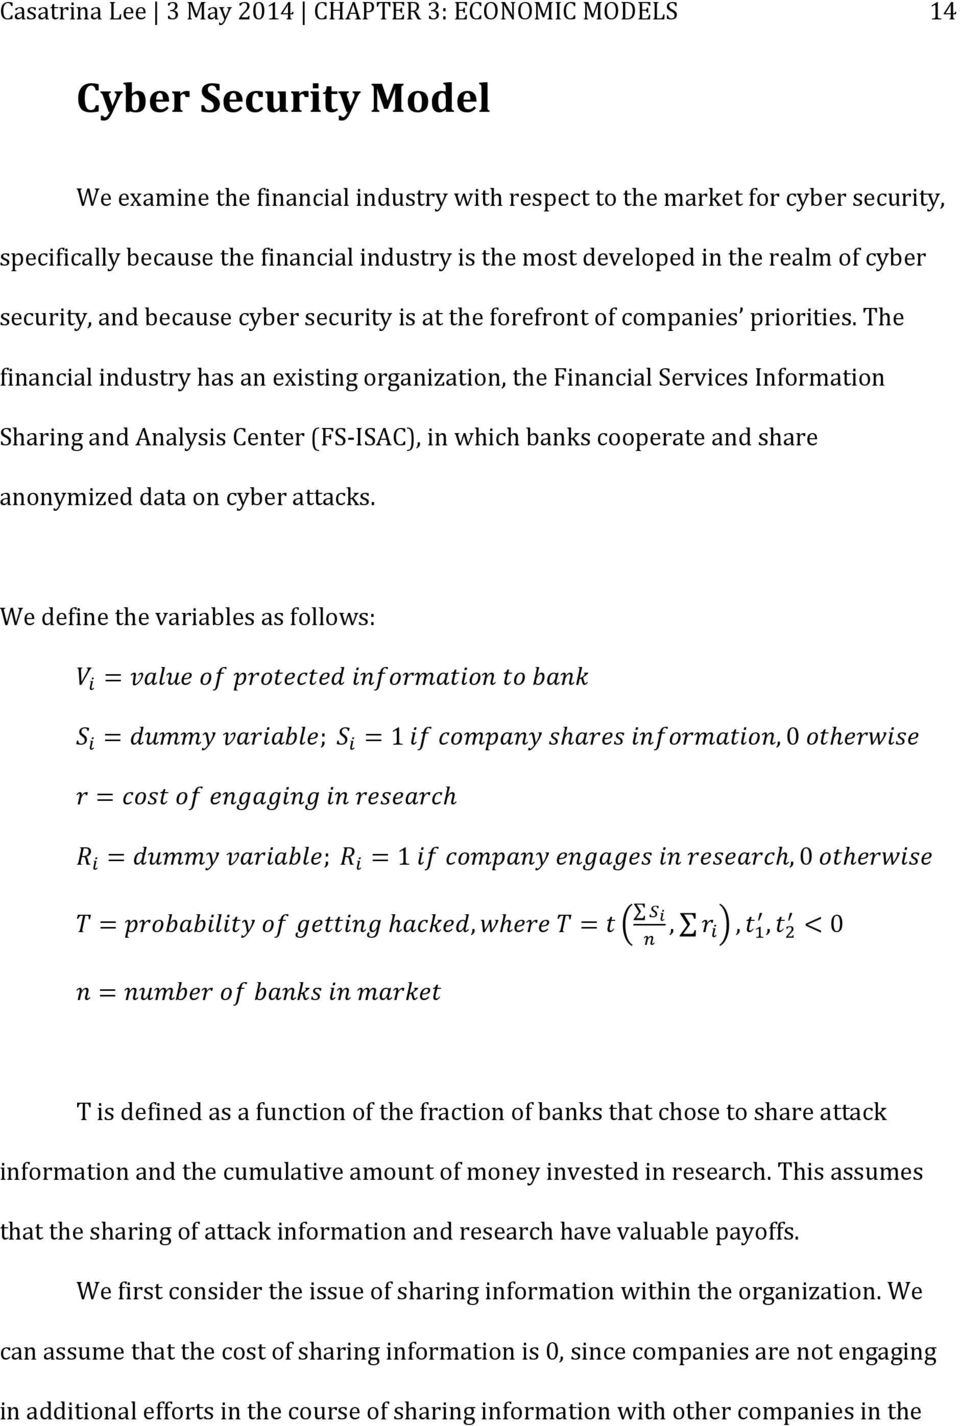 the financialindustryhasanexistingorganization,thefinancialservicesinformation SharingandAnalysisCenterFSPISAC),inwhichbankscooperateandshare anonymizeddataoncyberattacks.